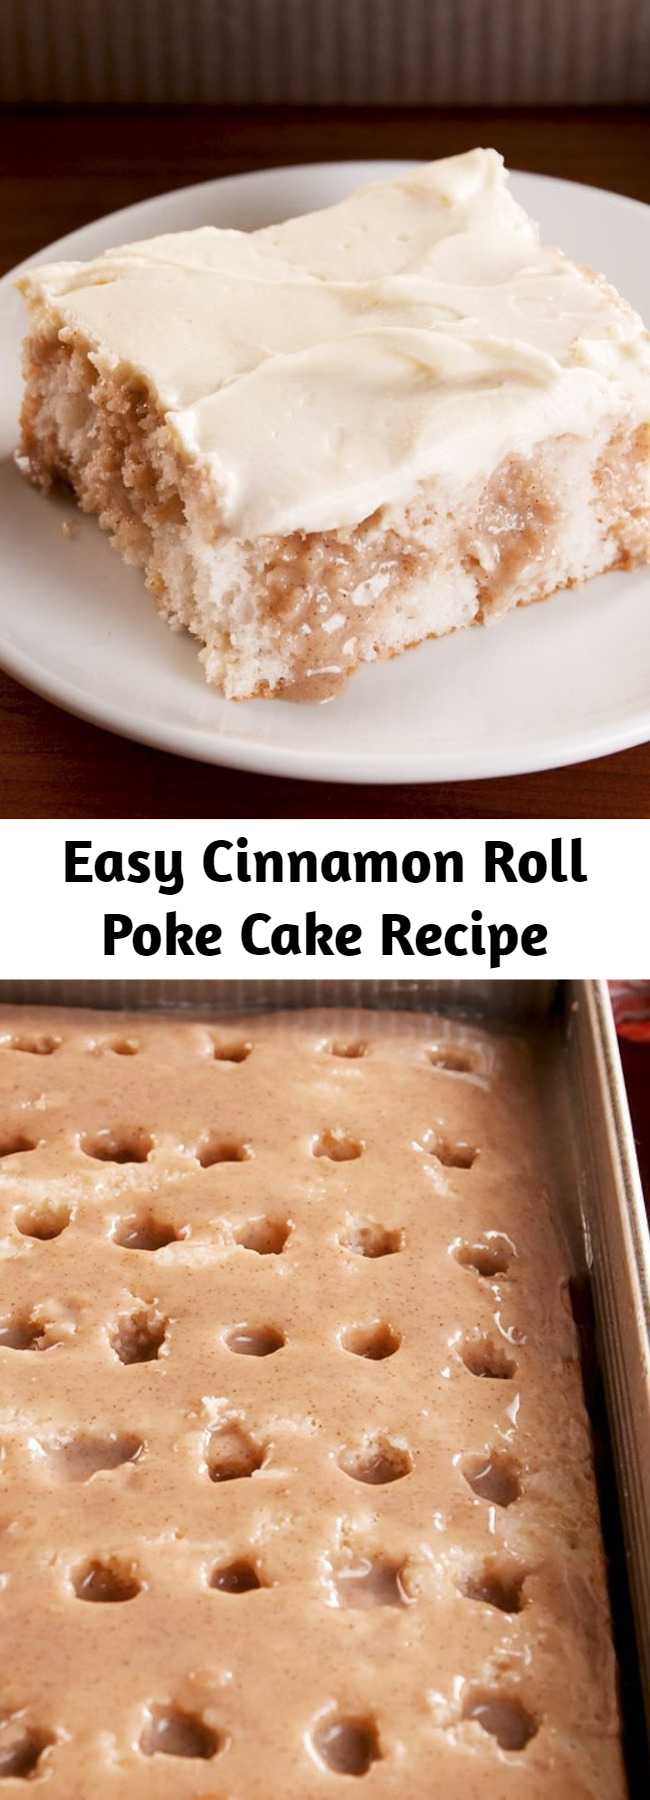 Easy Cinnamon Roll Poke Cake Recipe - Pull out this Cinnamon Roll Poke Cake at the end of the meal, and you'll be the most popular person in the room. It has everything you love about cinnamon rolls, even the cream cheese frosting! It's extremely decadent and exactly what we are craving at every moment of the day. #easy #recipe #cinnamonroll #pokecake #cinnamonrollpokecake #cakes #easydesserts